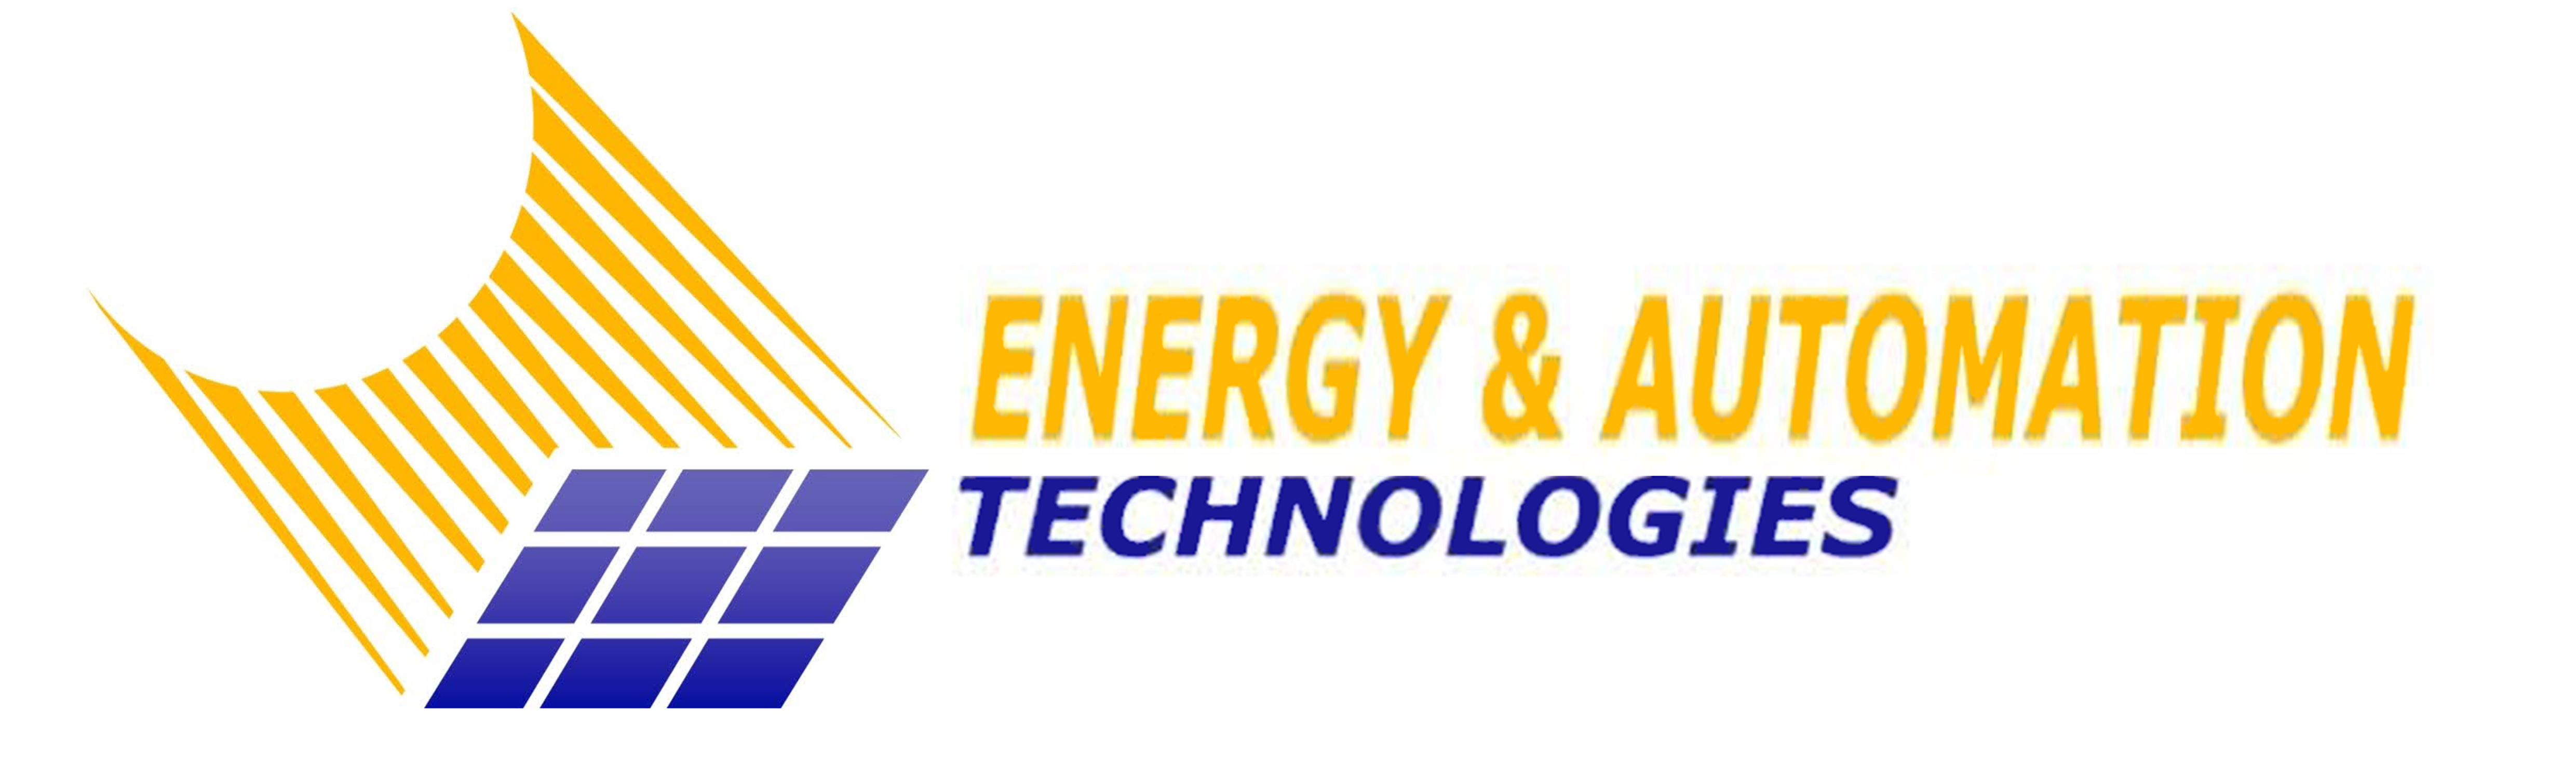 Energy and Automation Technology